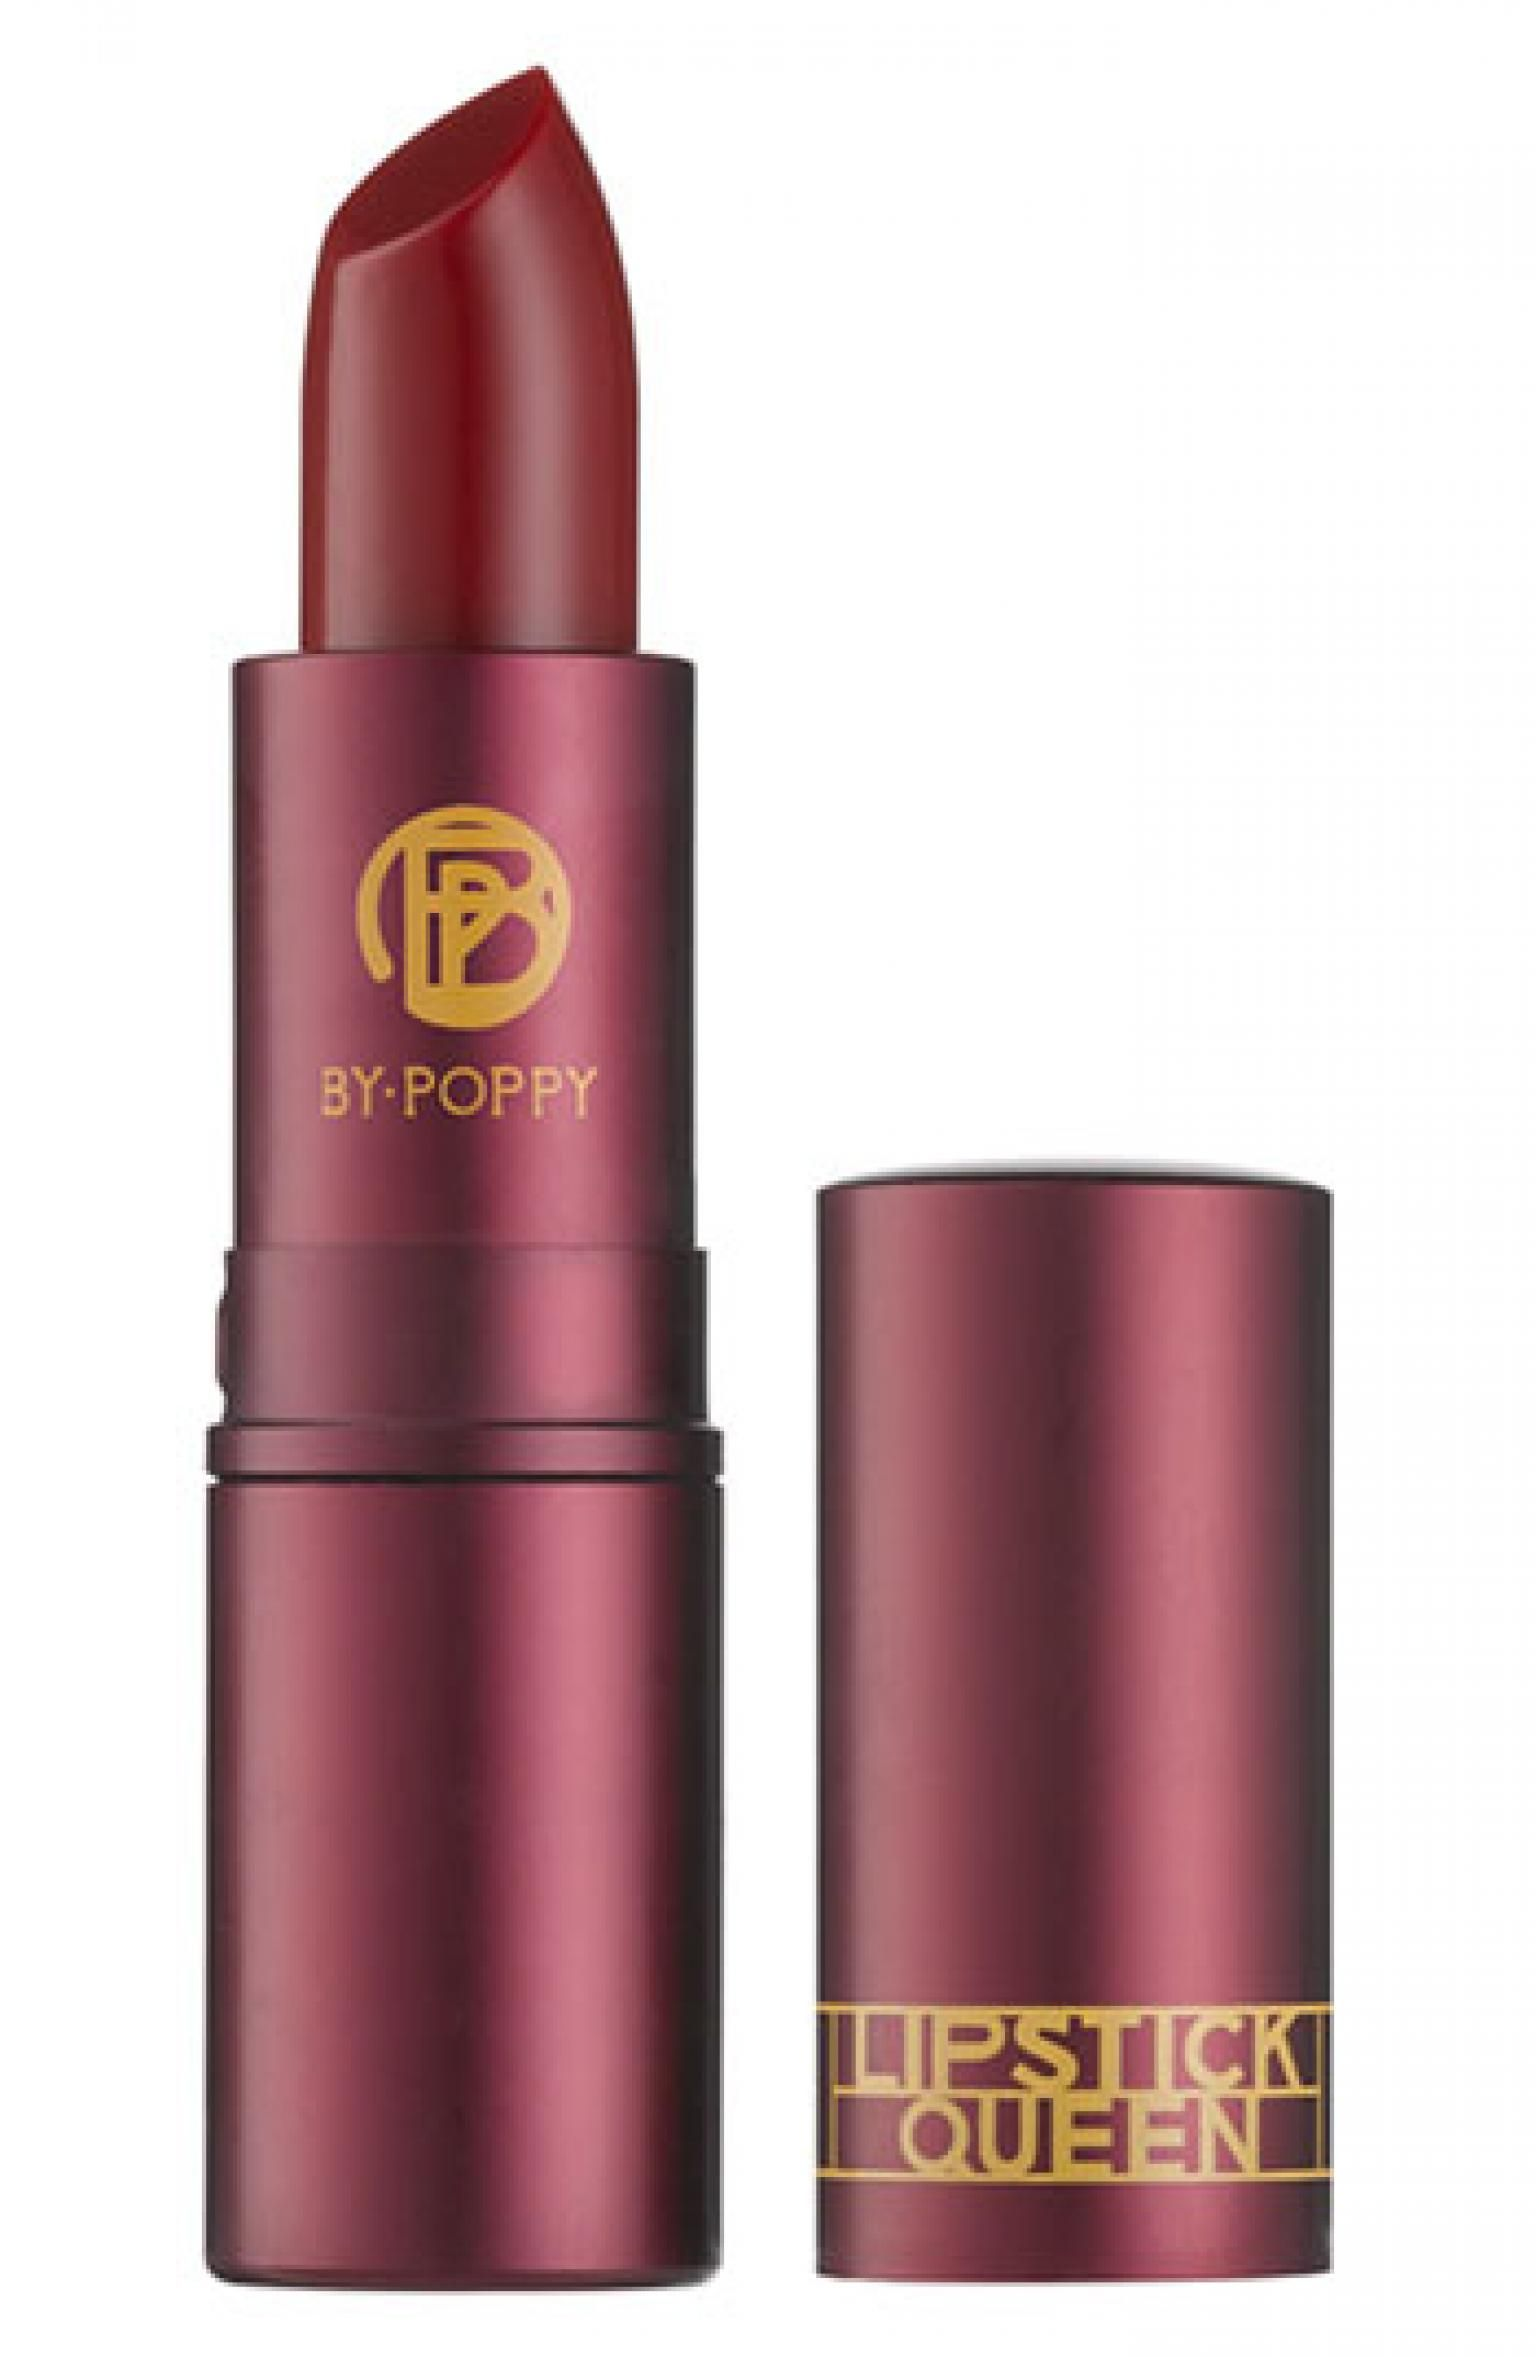 Lipstick Queen in Medieval // Nervous about trying red lips?  This subtle shade is the perfect entry-level red.